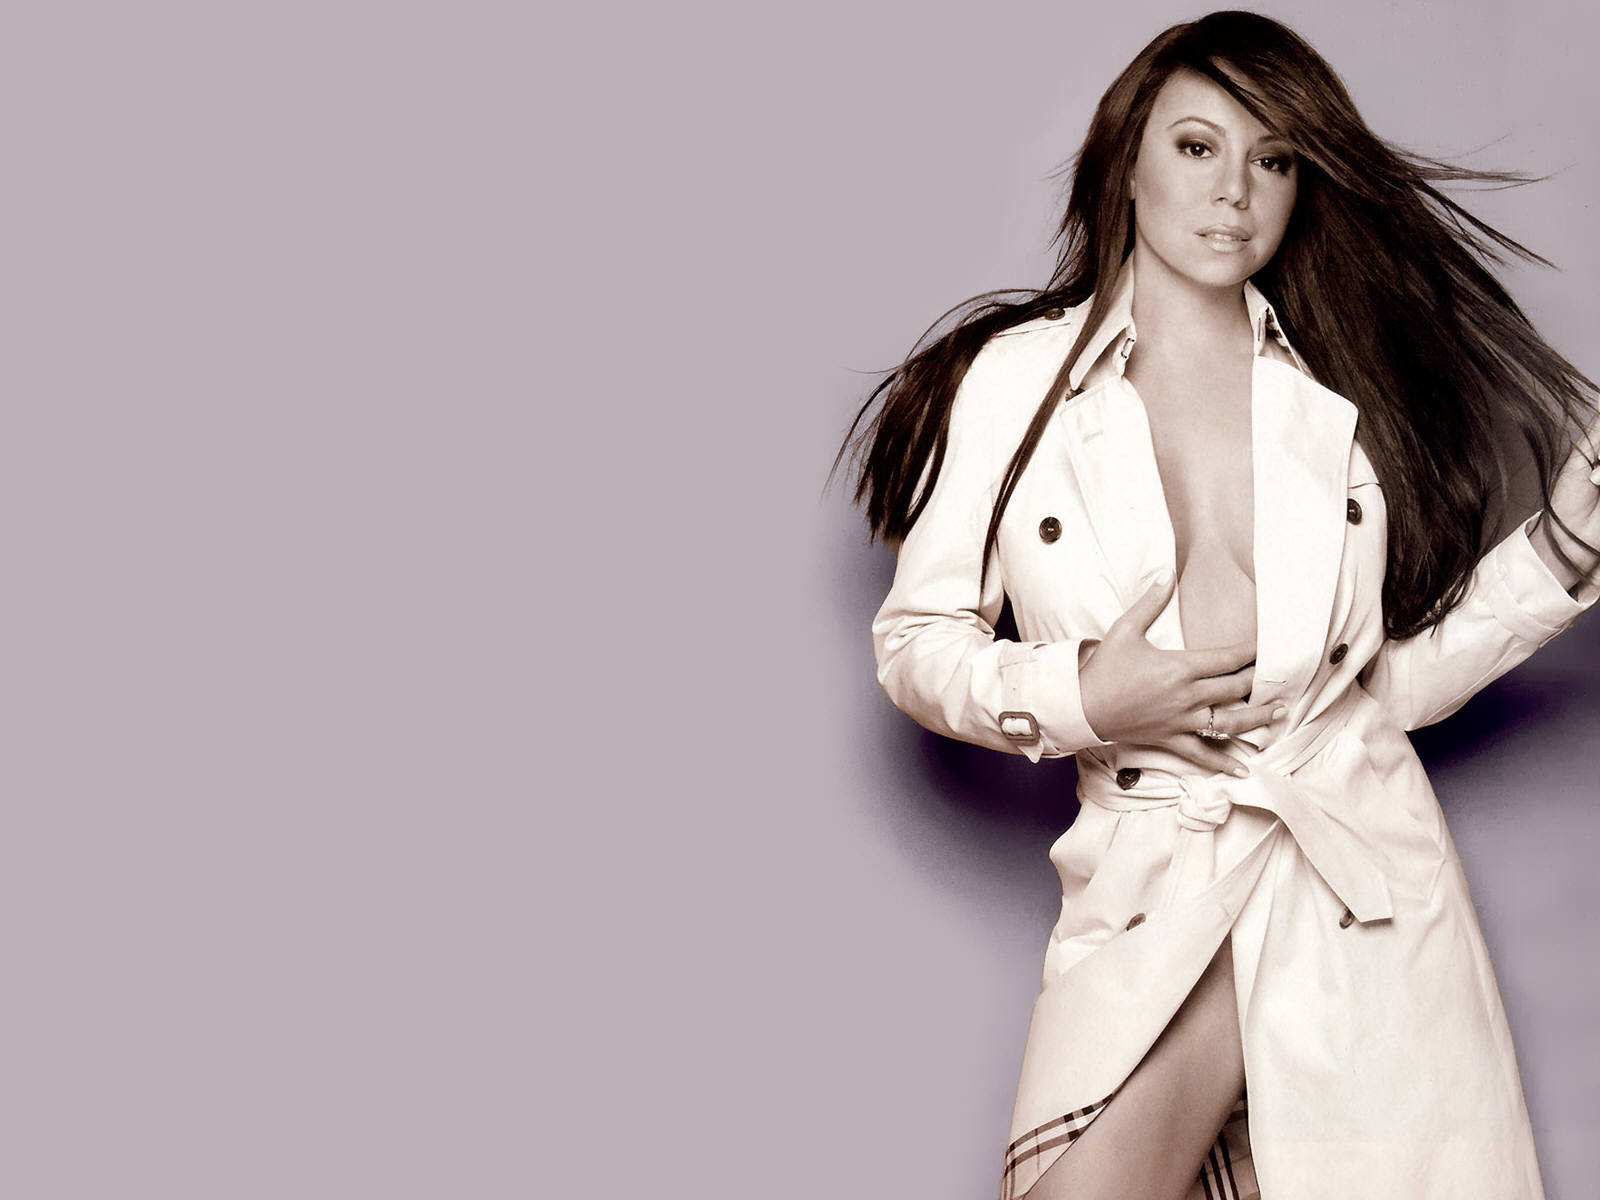 mariah carey profile biography and wallpaperz 2011 all